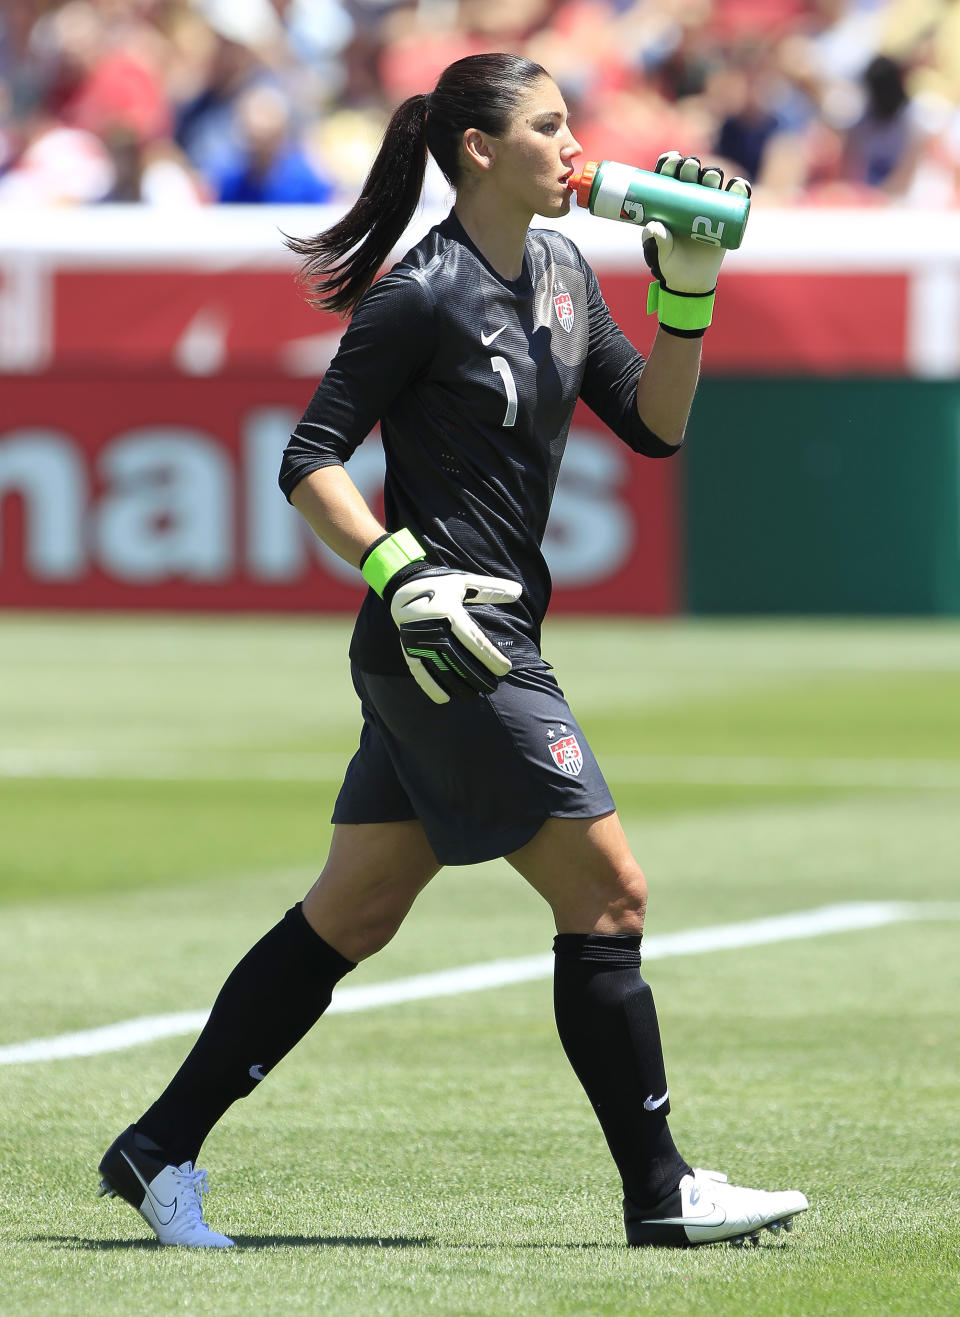 After appearing in ESPN The Body Issue, Hope Solo, proved why she can be considered one of the hottest Olympians in the London Games. Goalkeeper Hope Solo #1 of the USA even makes drinking water look like something you want to engage in. (Photo by George Frey/Getty Images)